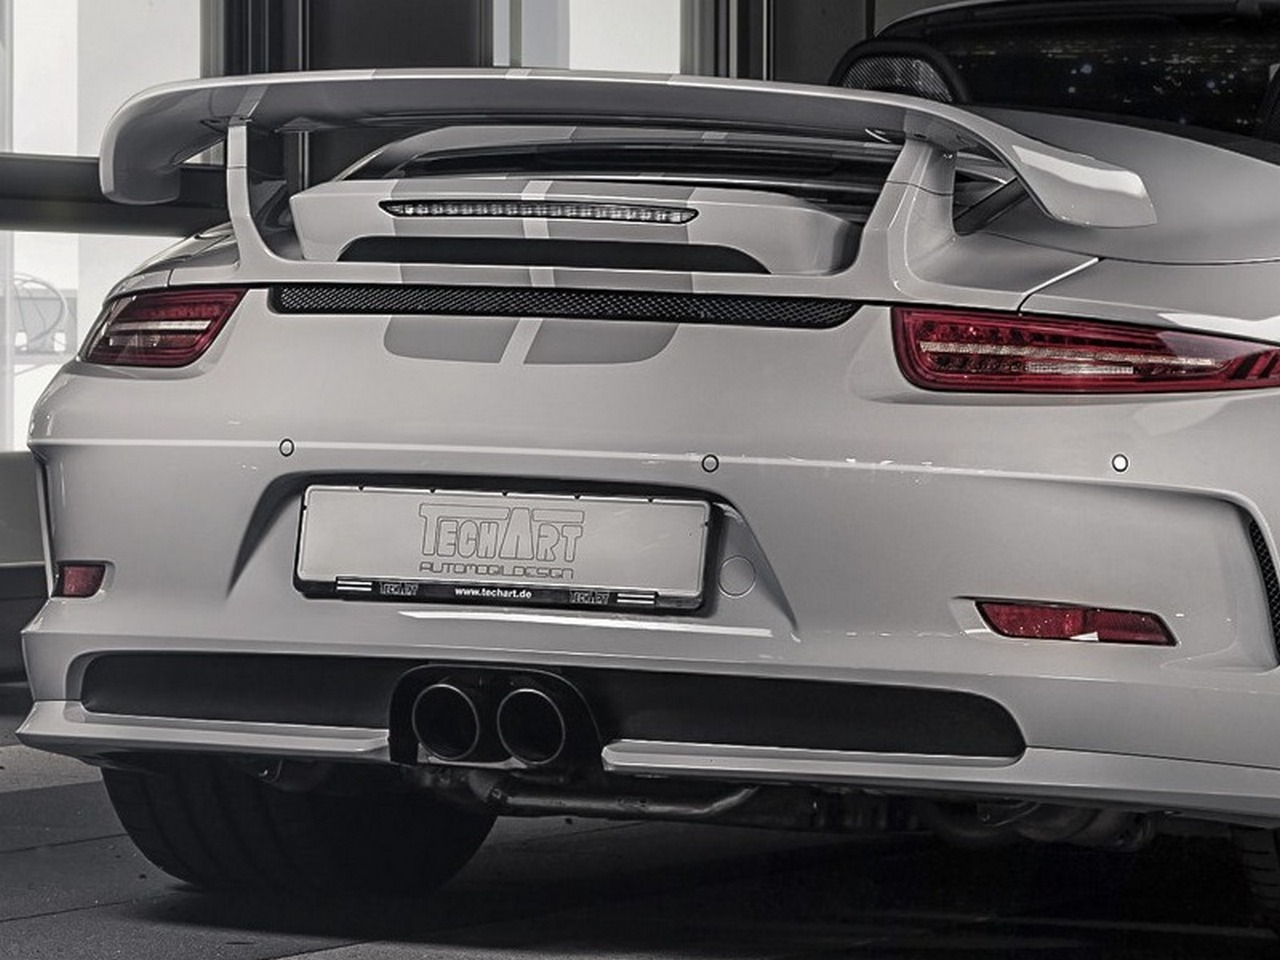 TECHART_foxcvr_911_GTS_rear